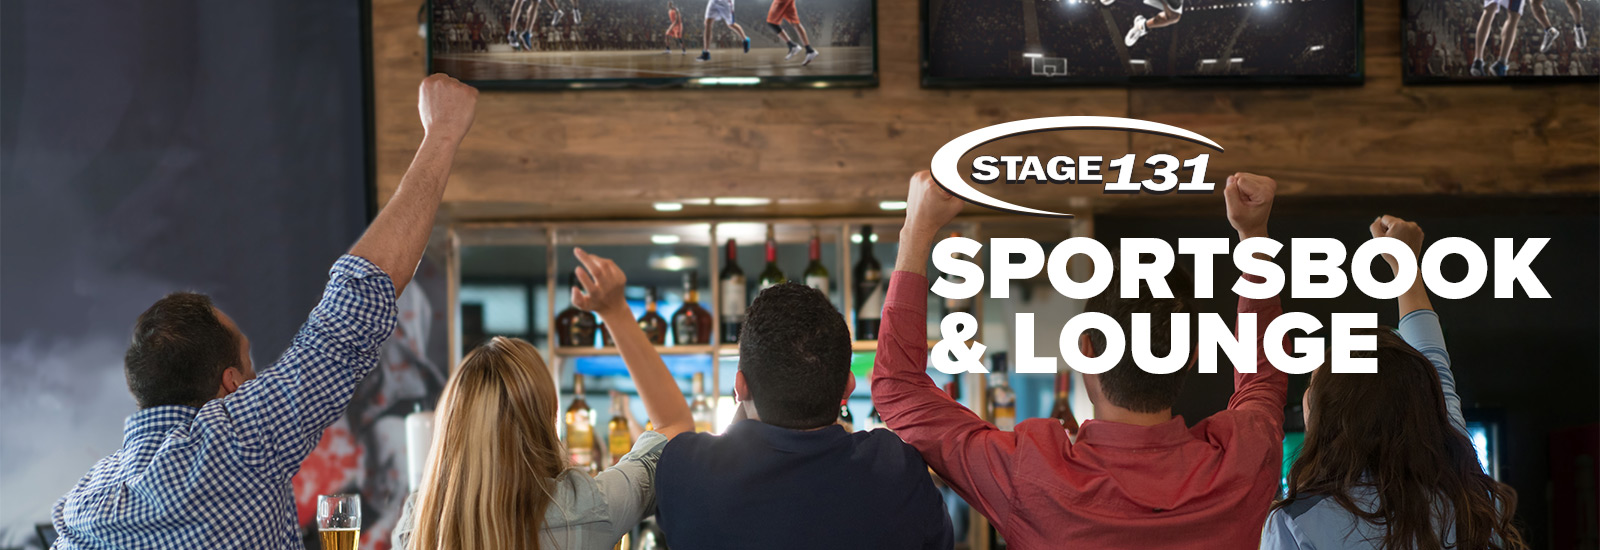 Sportsbook and Lounge